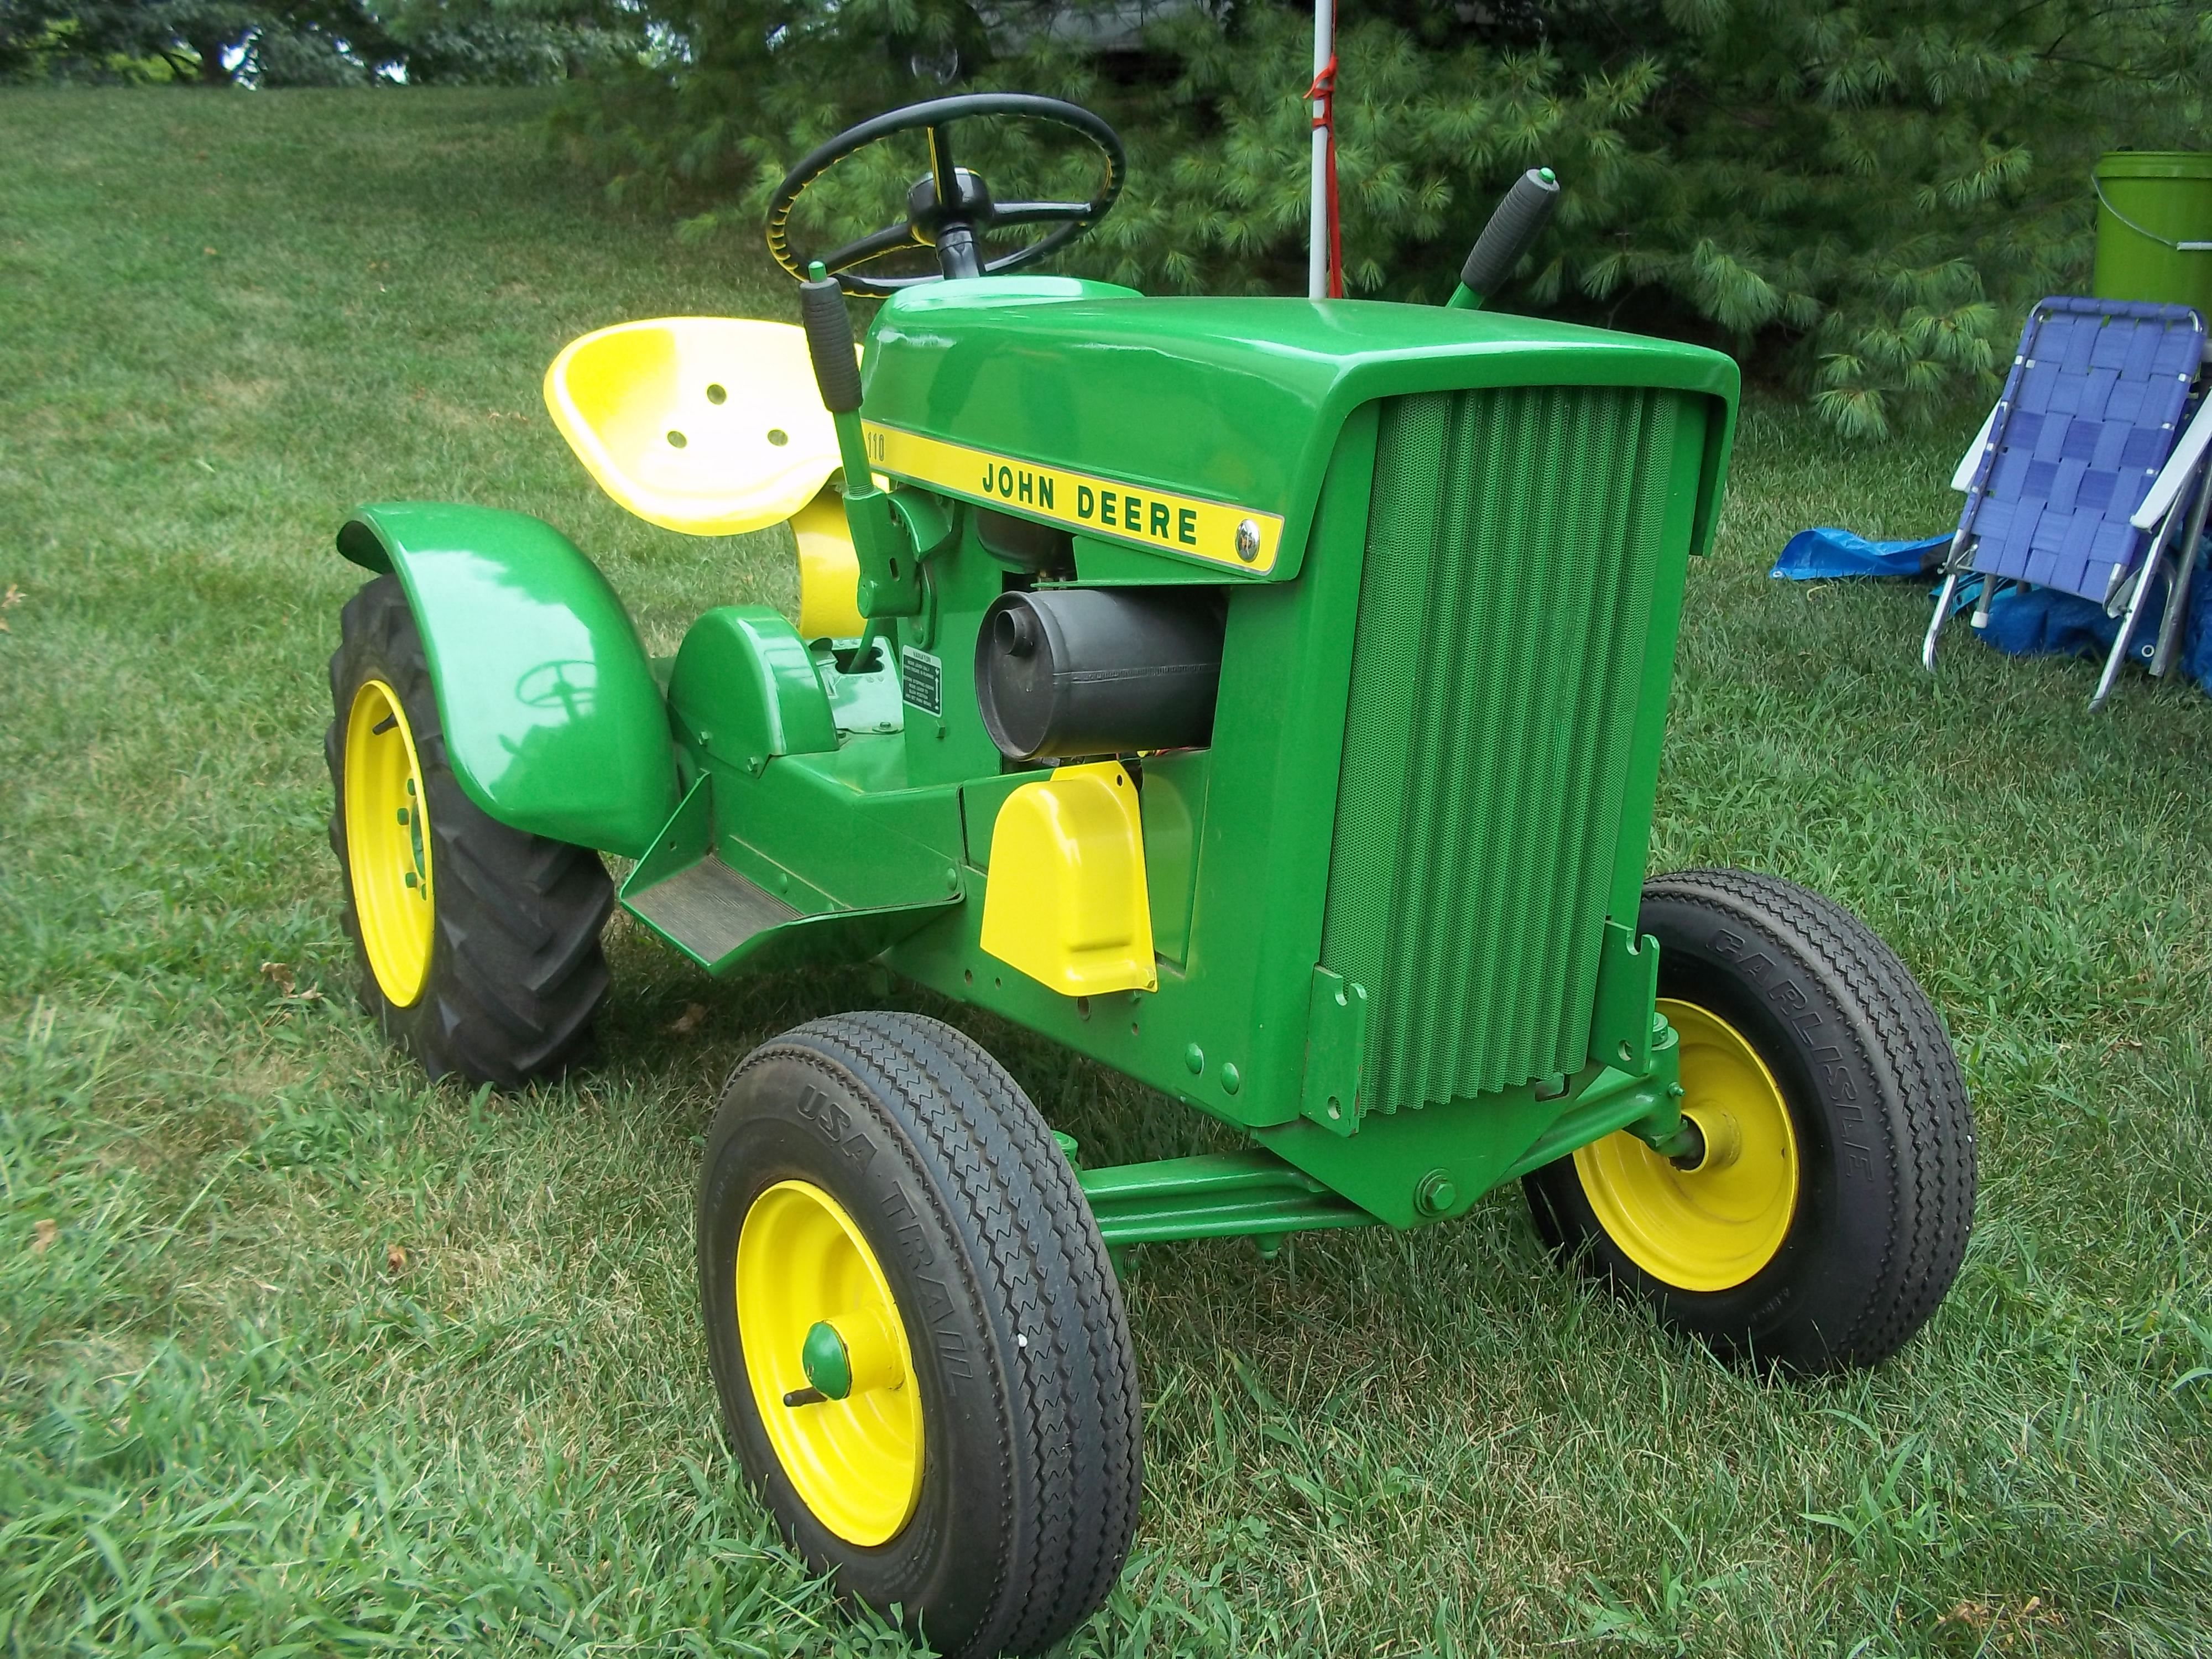 1969 john deere 140 wiring diagram draw the tracing panel of an alternator nice 110 lawn and garden tractor